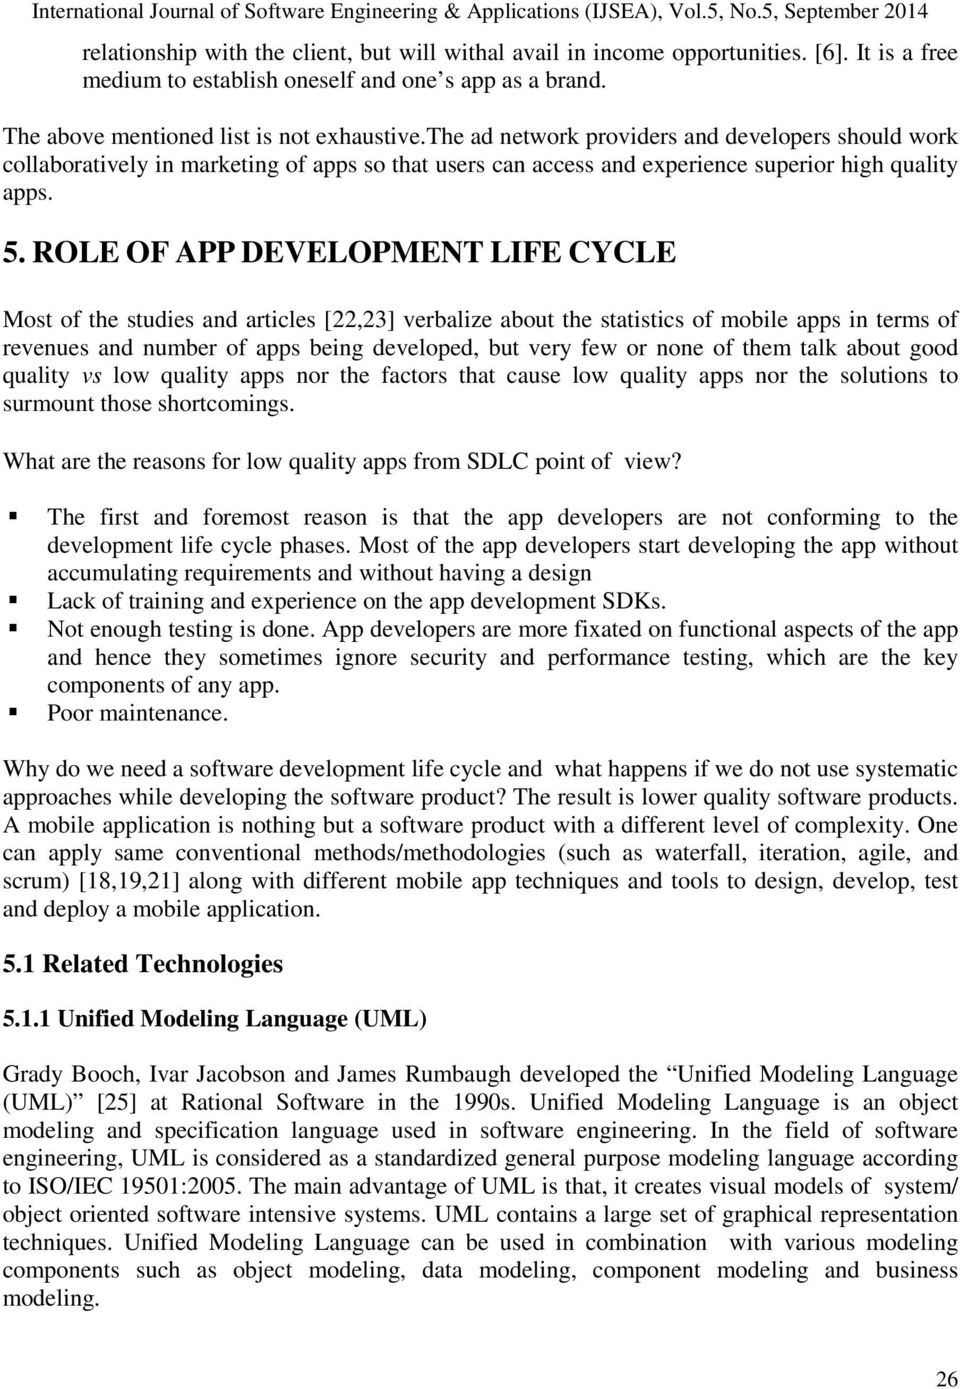 ROLE OF APP DEVELOPMENT LIFE CYCLE Most of the studies and articles [22,23] verbalize about the statistics of mobile apps in terms of revenues and number of apps being developed, but very few or none